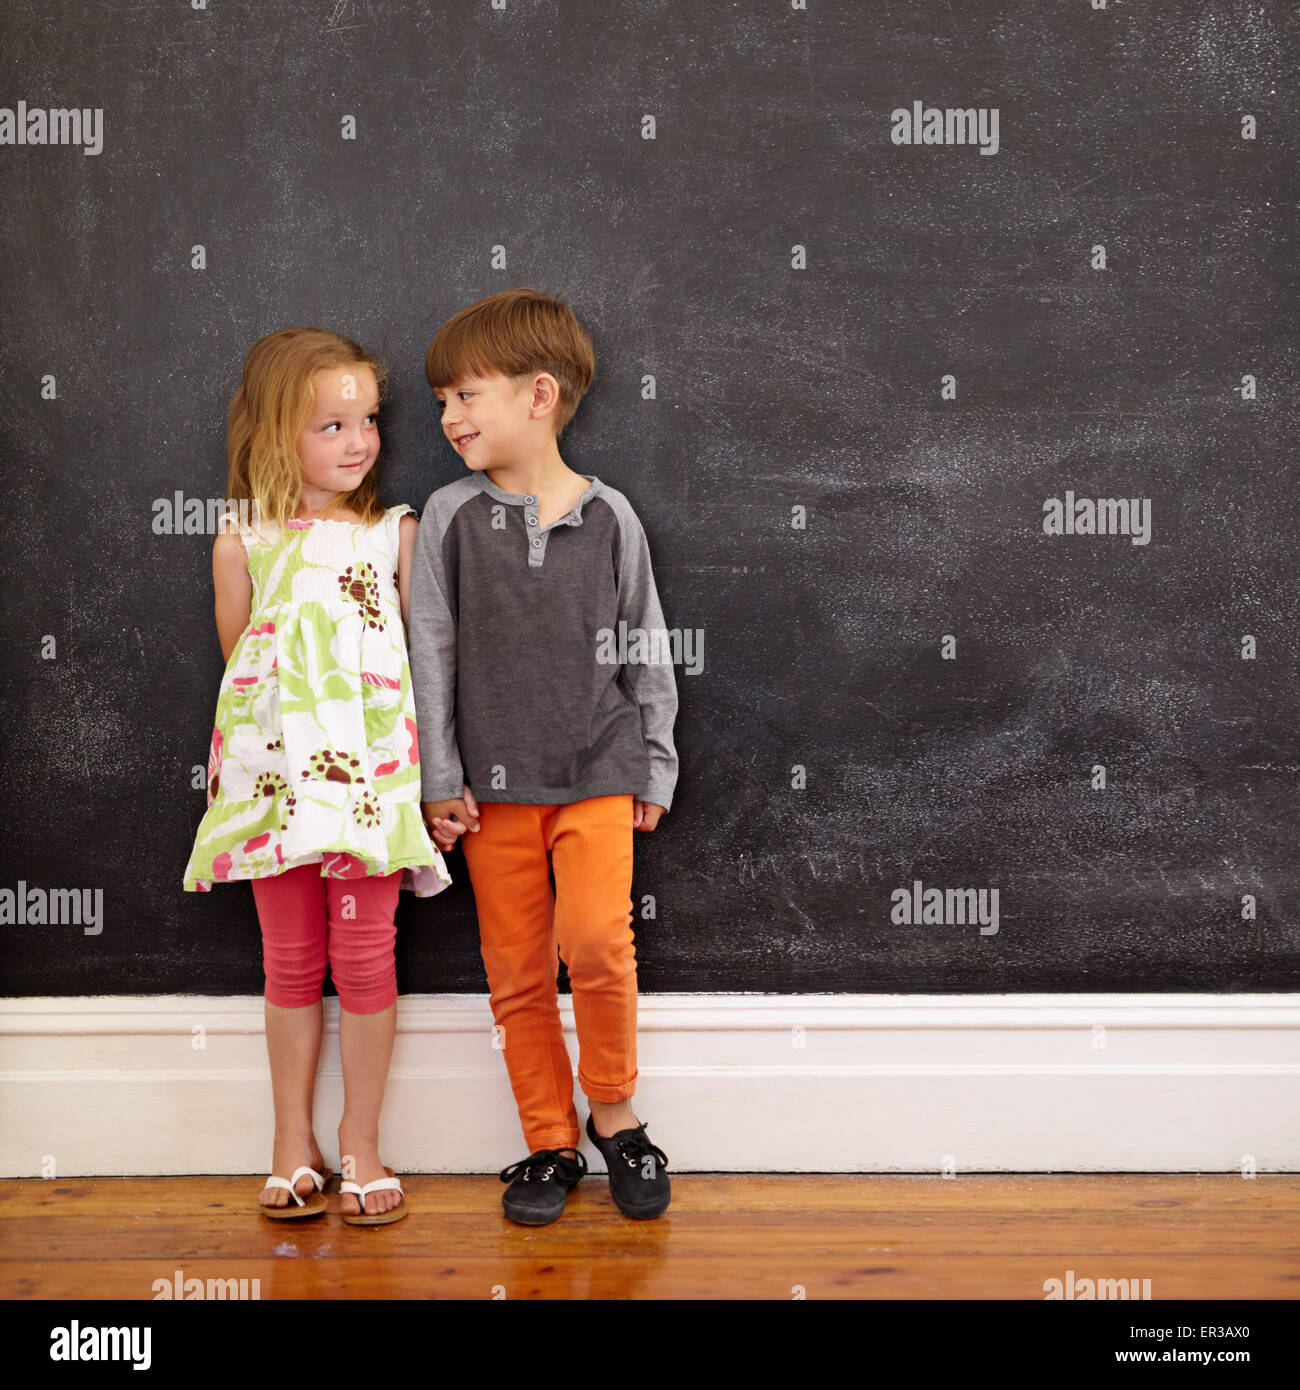 Little boy and girl standing in front of blackboard looking at each other. Indoors shot of children at home with - Stock Image